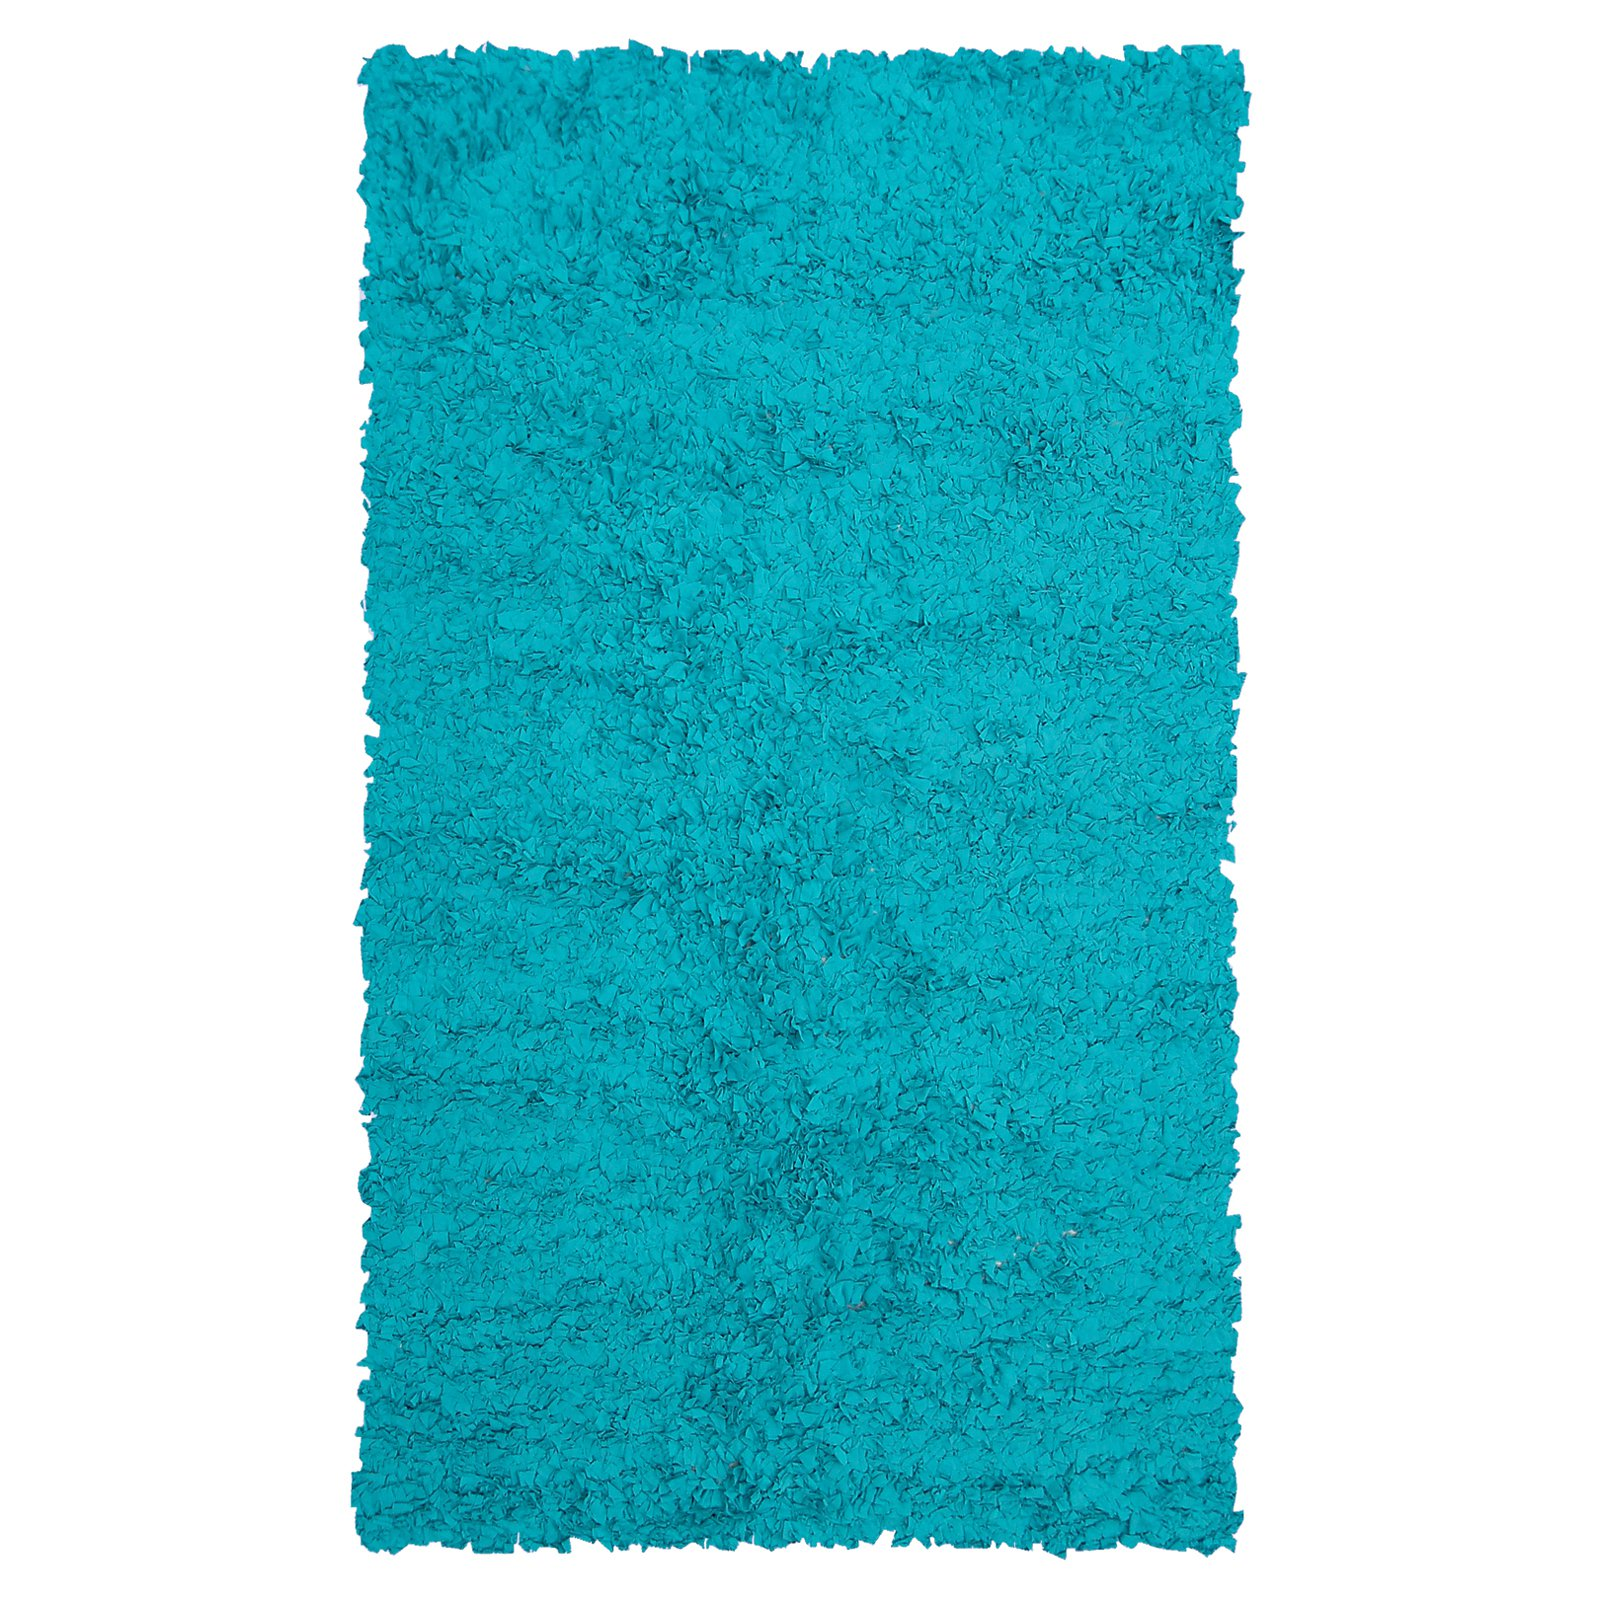 The Rug Market Shaggy Raggy Teal Size 2.8' x 4.8' Area Rug